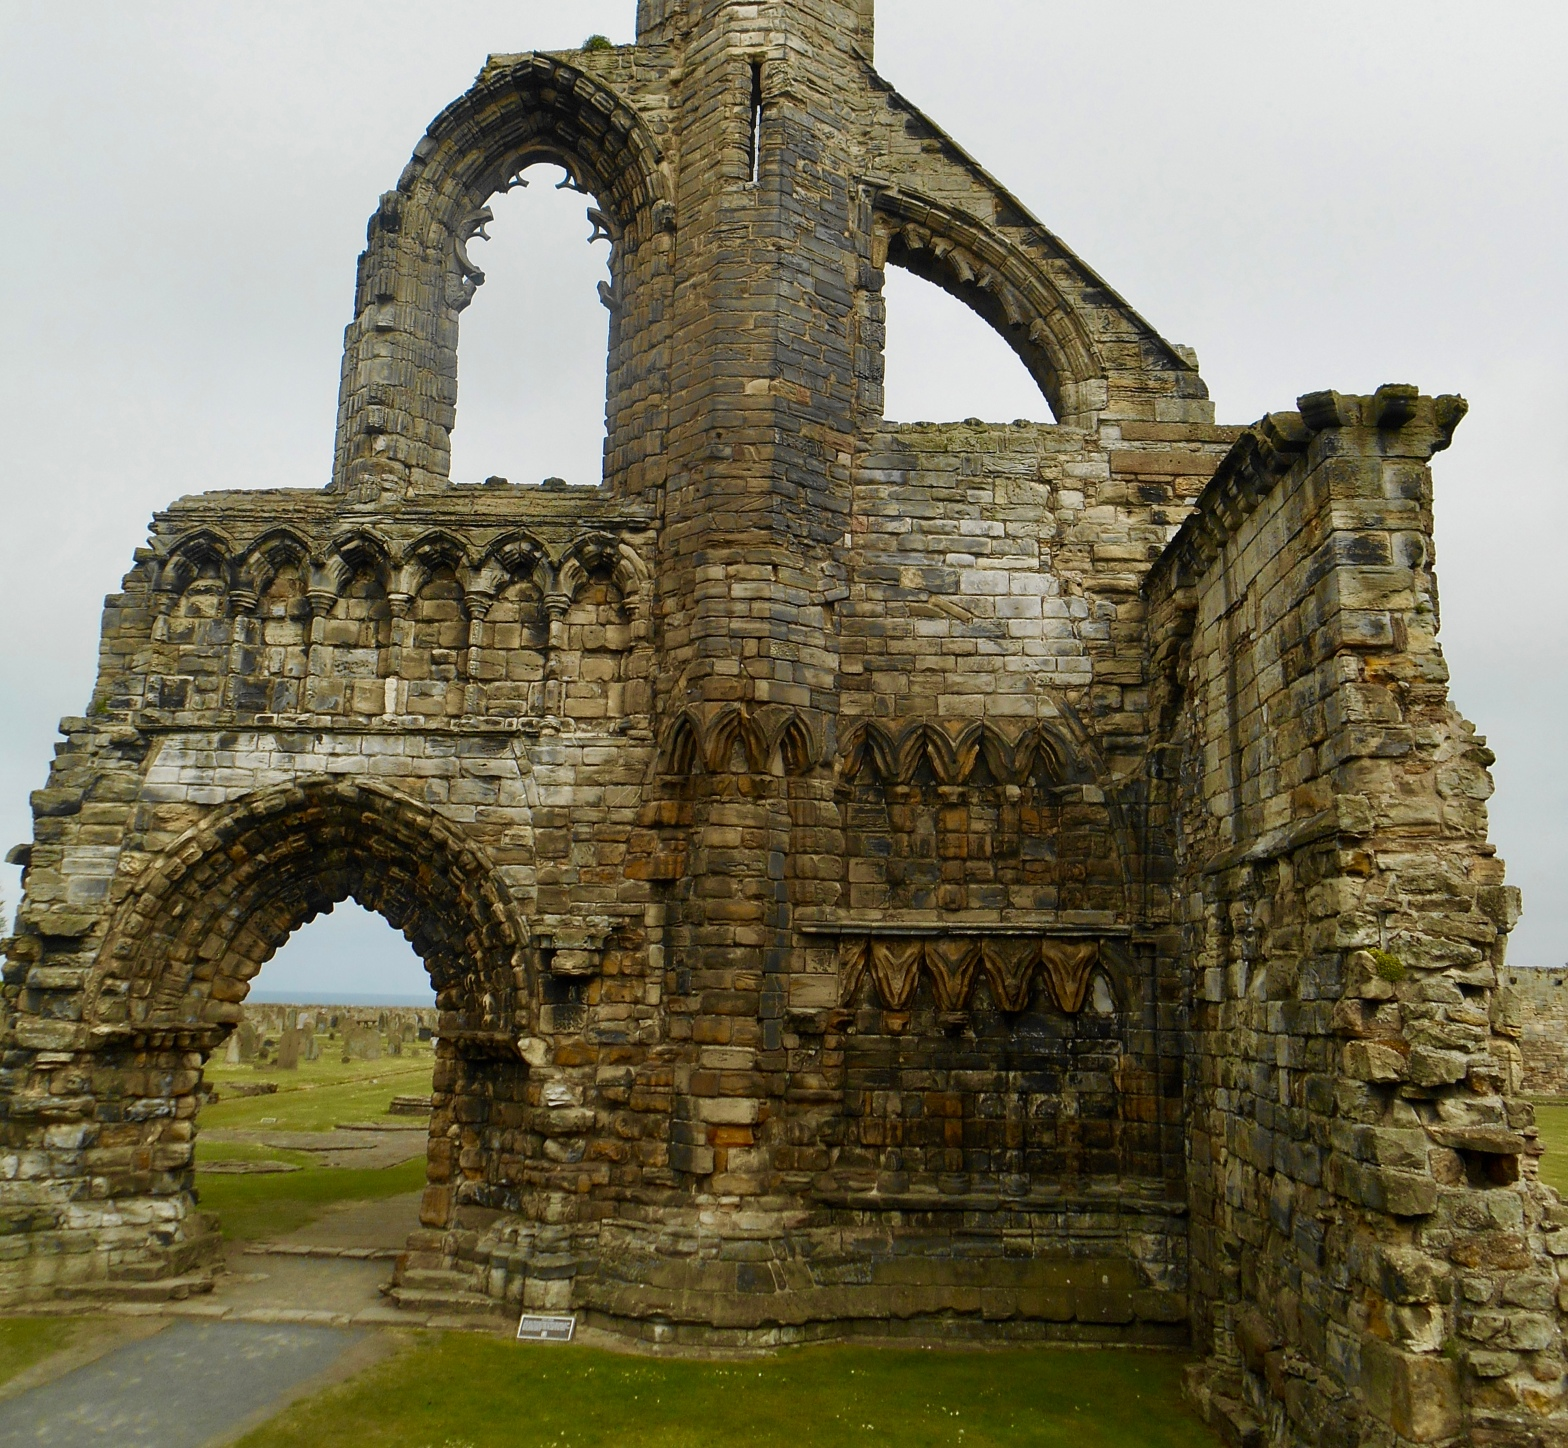 image of St. Andrews ruins in Scotland